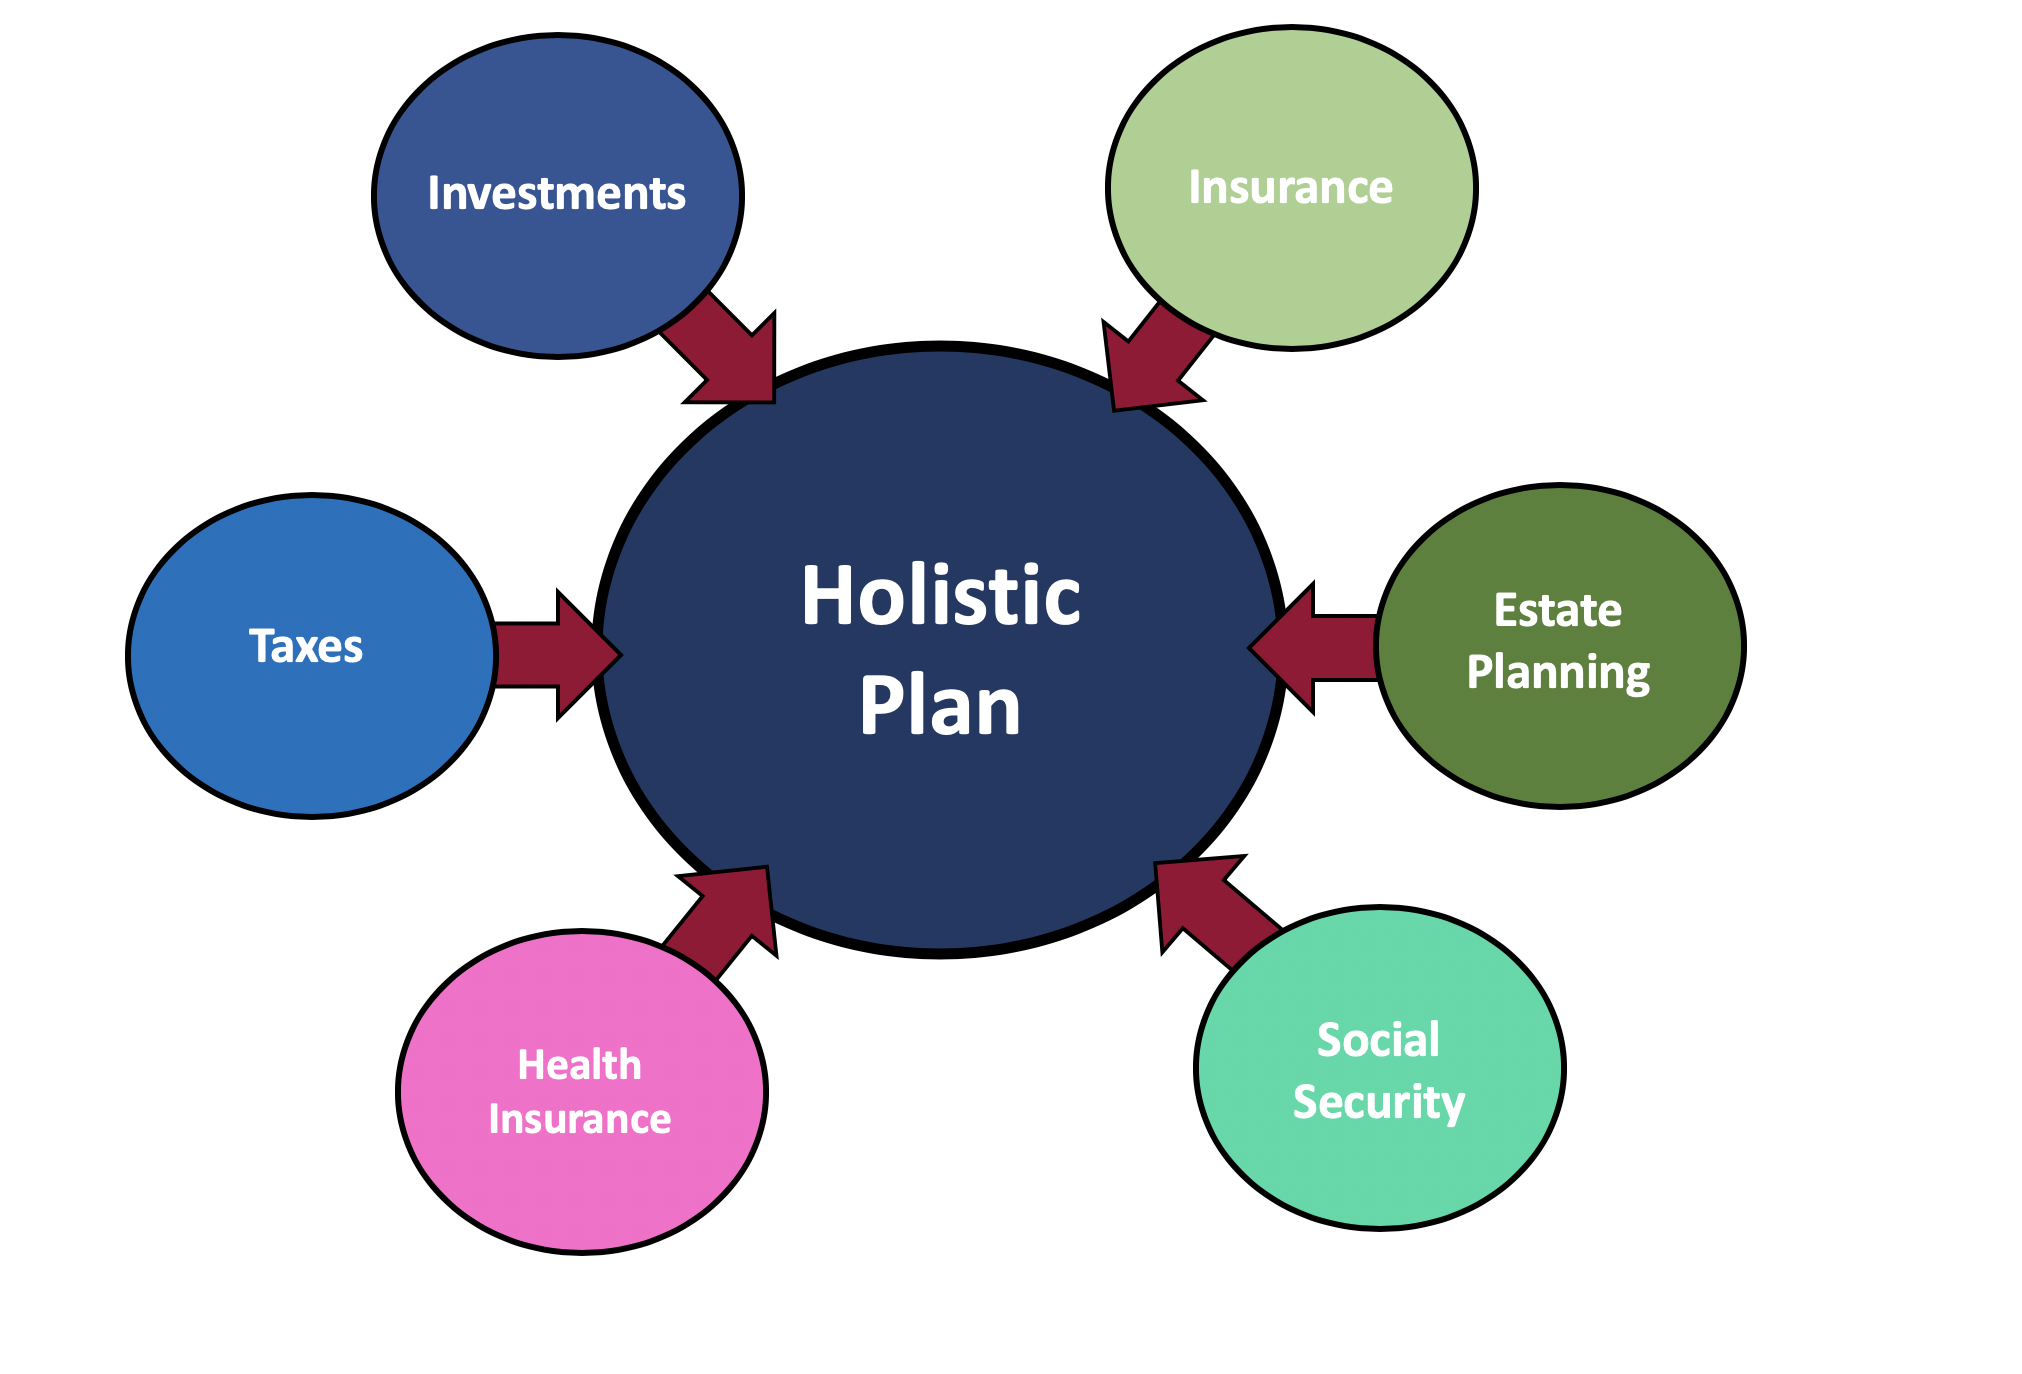 Our Holistic Plan